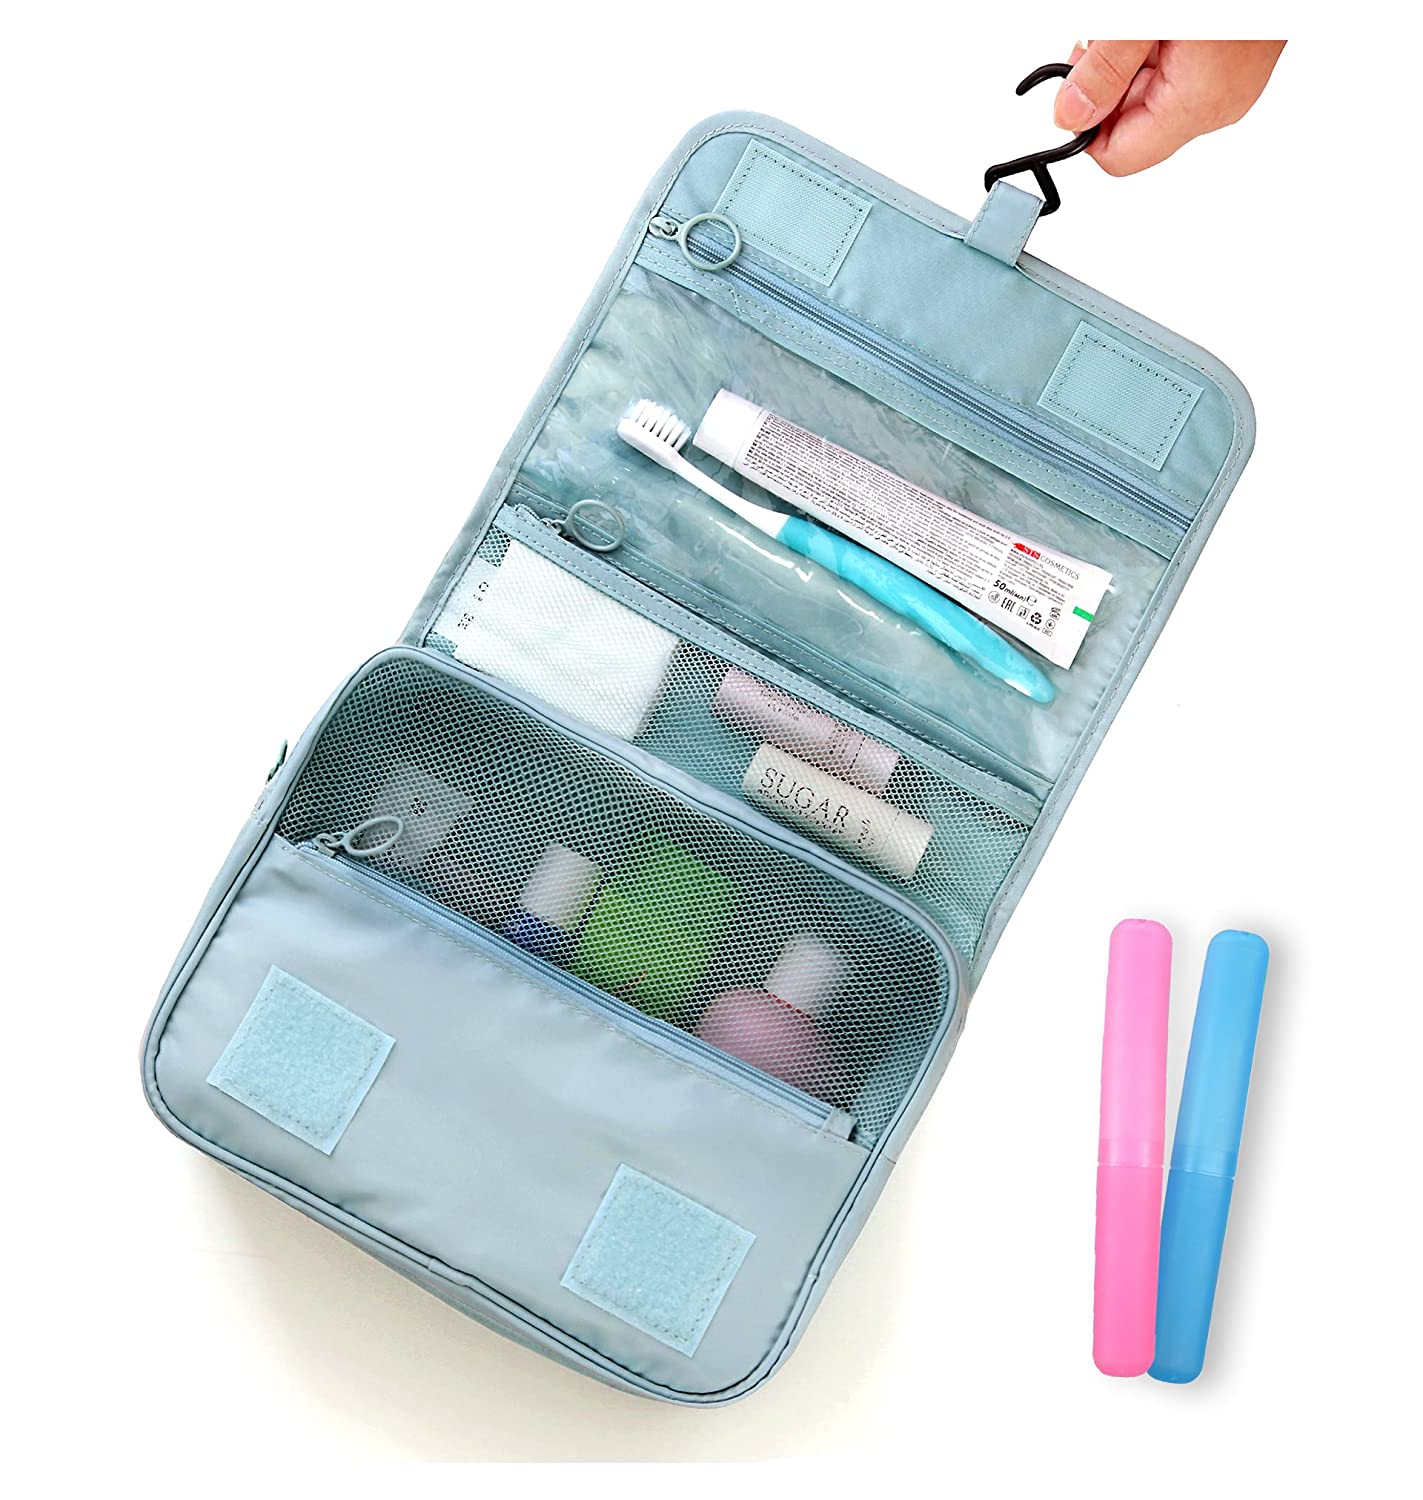 c169bd1e6999 85%OFF SBYURE Hanging Toiletry Bag Organizer for Cosmetics